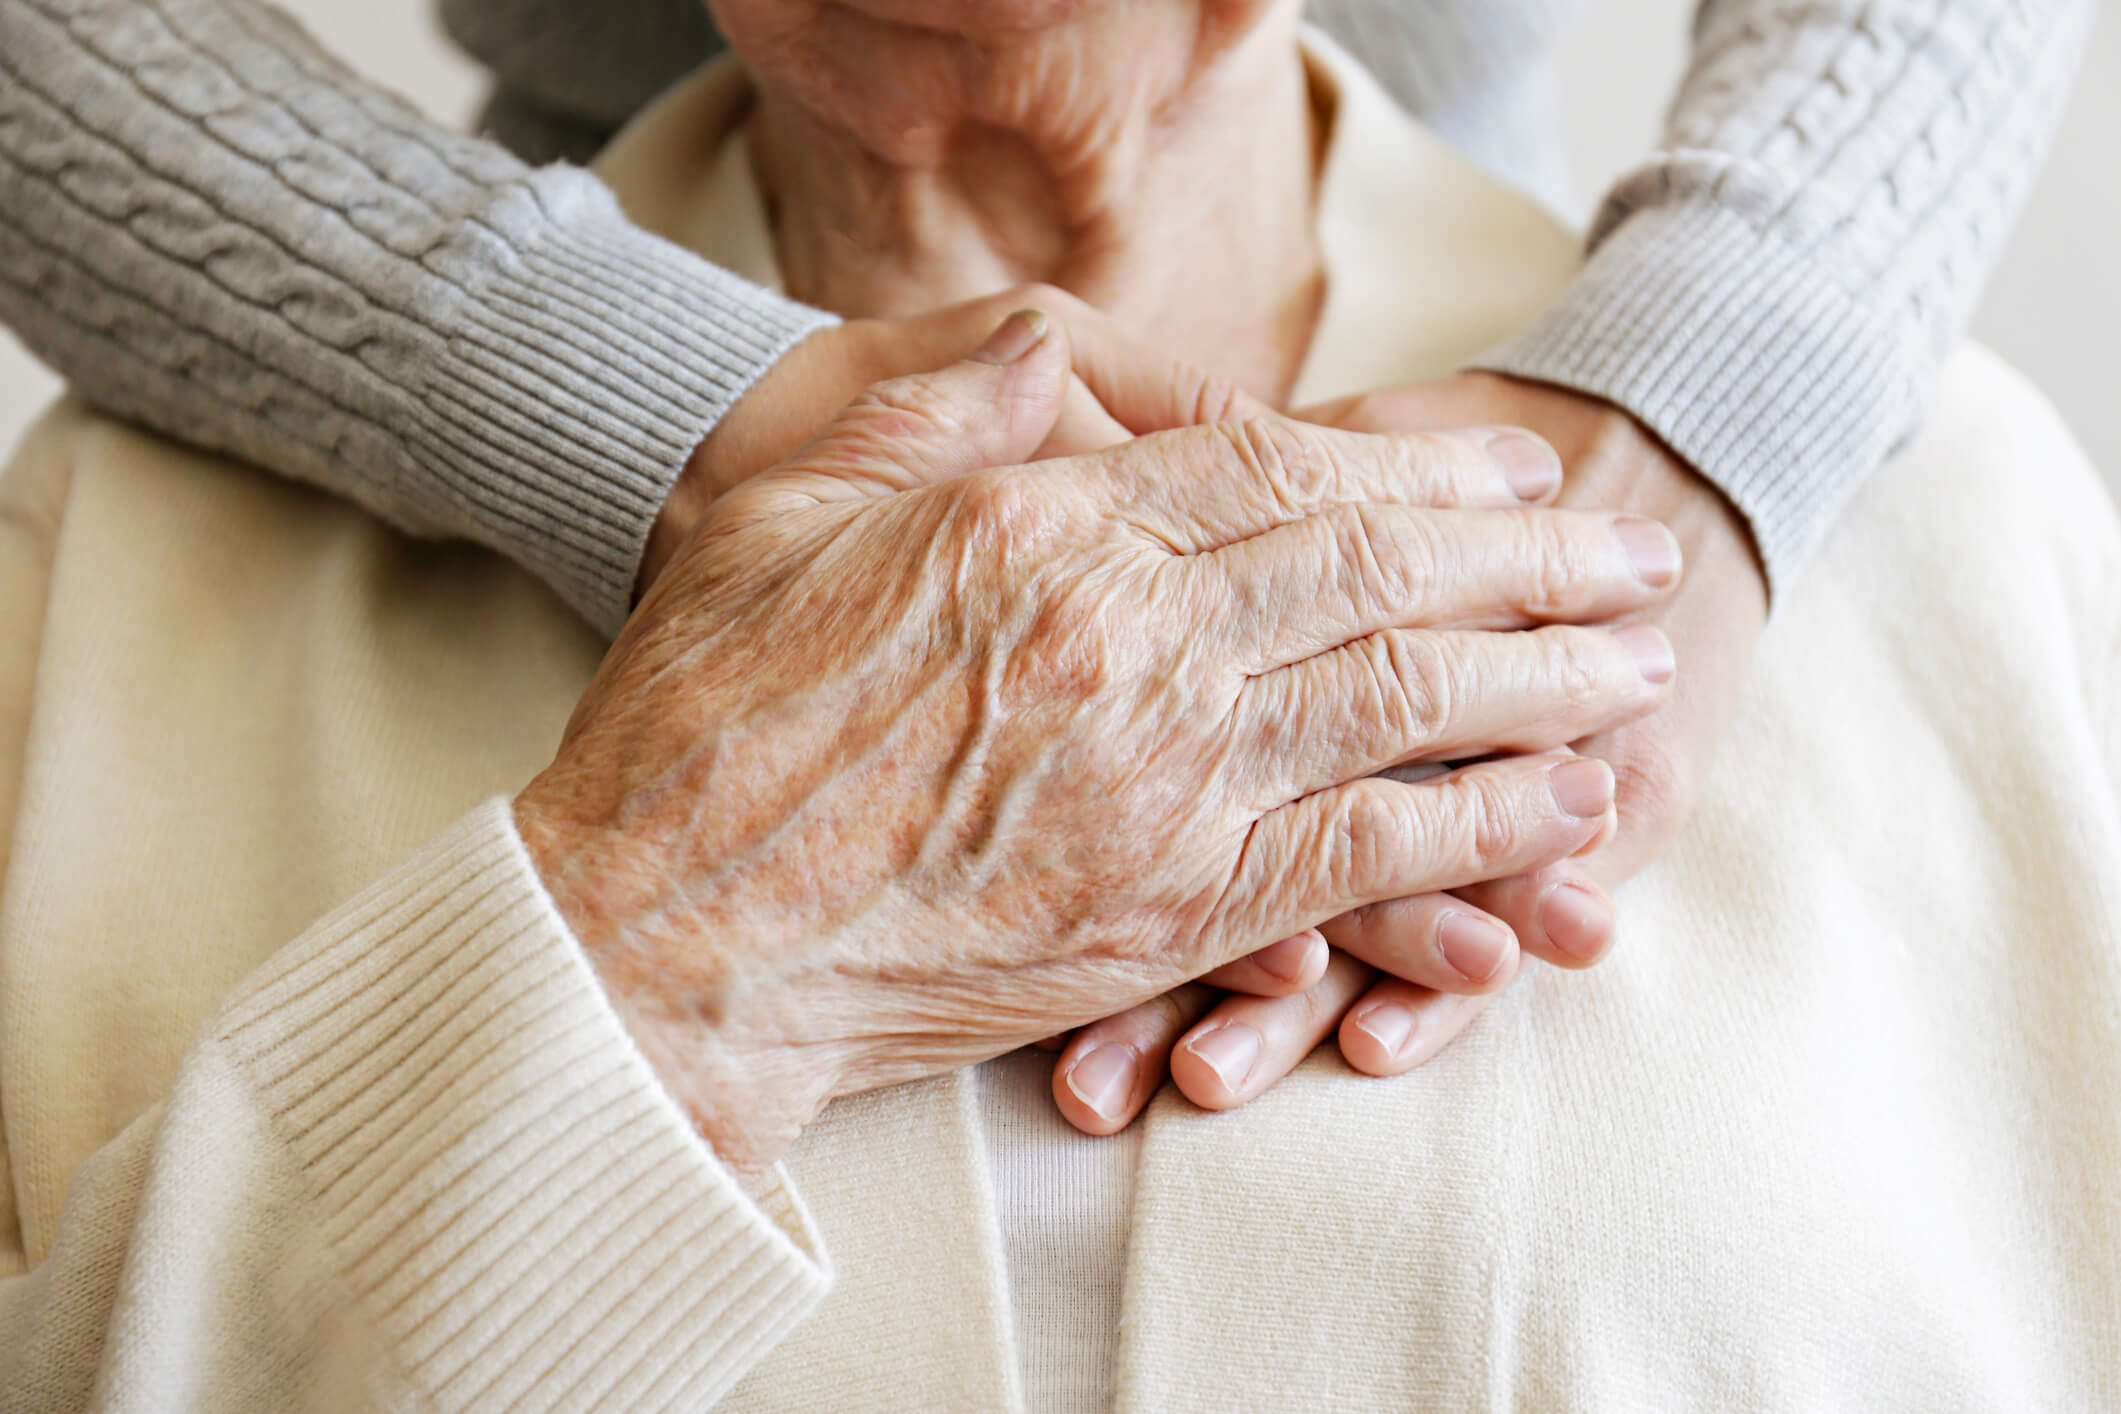 Image of next post - ASSISTED LIVING VS MEMORY CARE: WHAT'S THE DIFFERENCE?